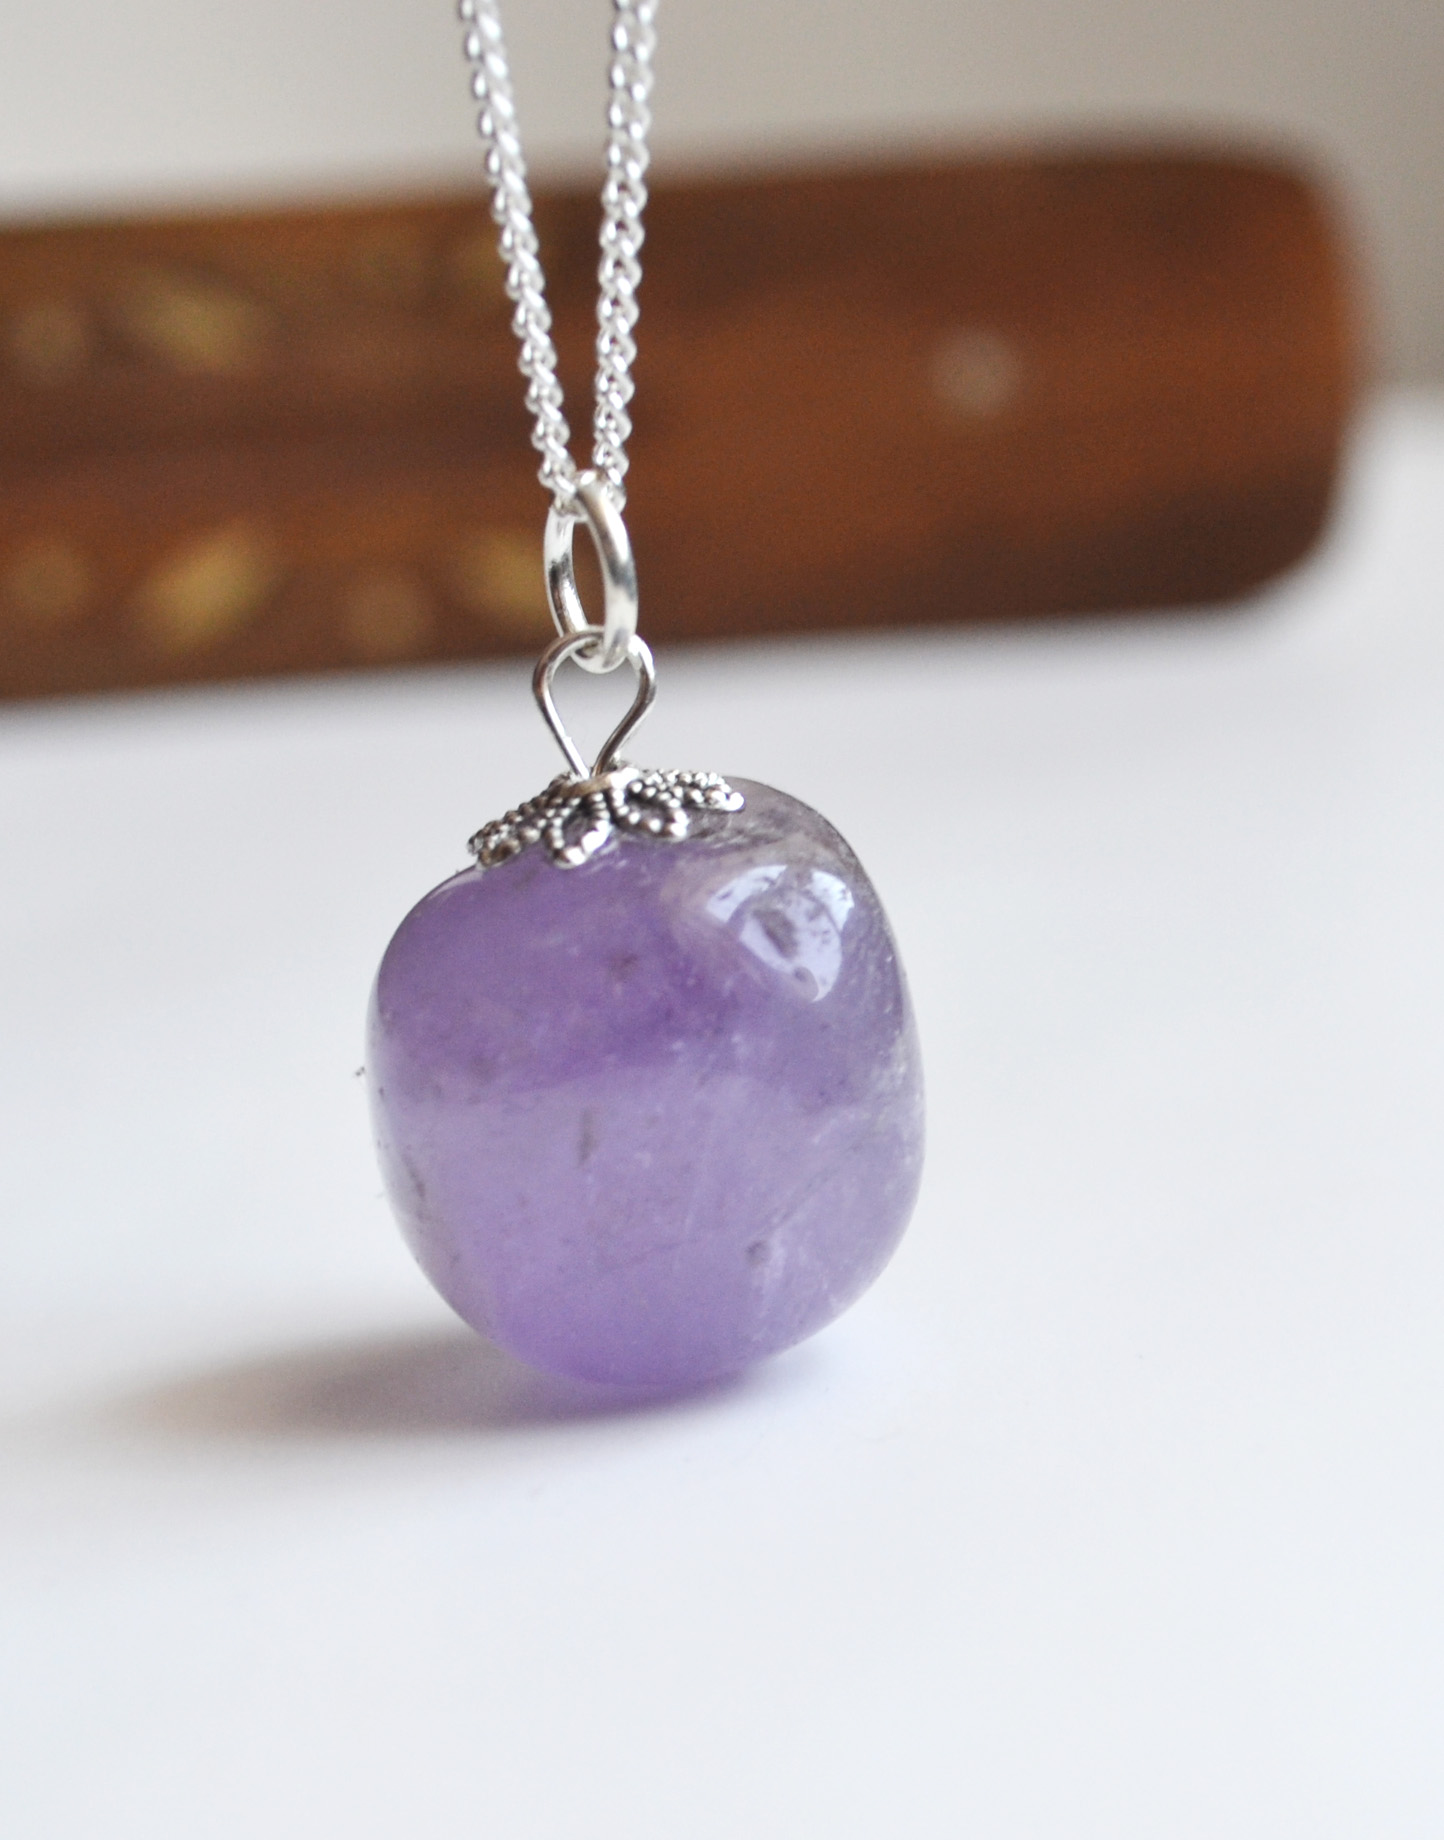 stones for jewelry amethyst necklace purple healing stones amethyst 1962